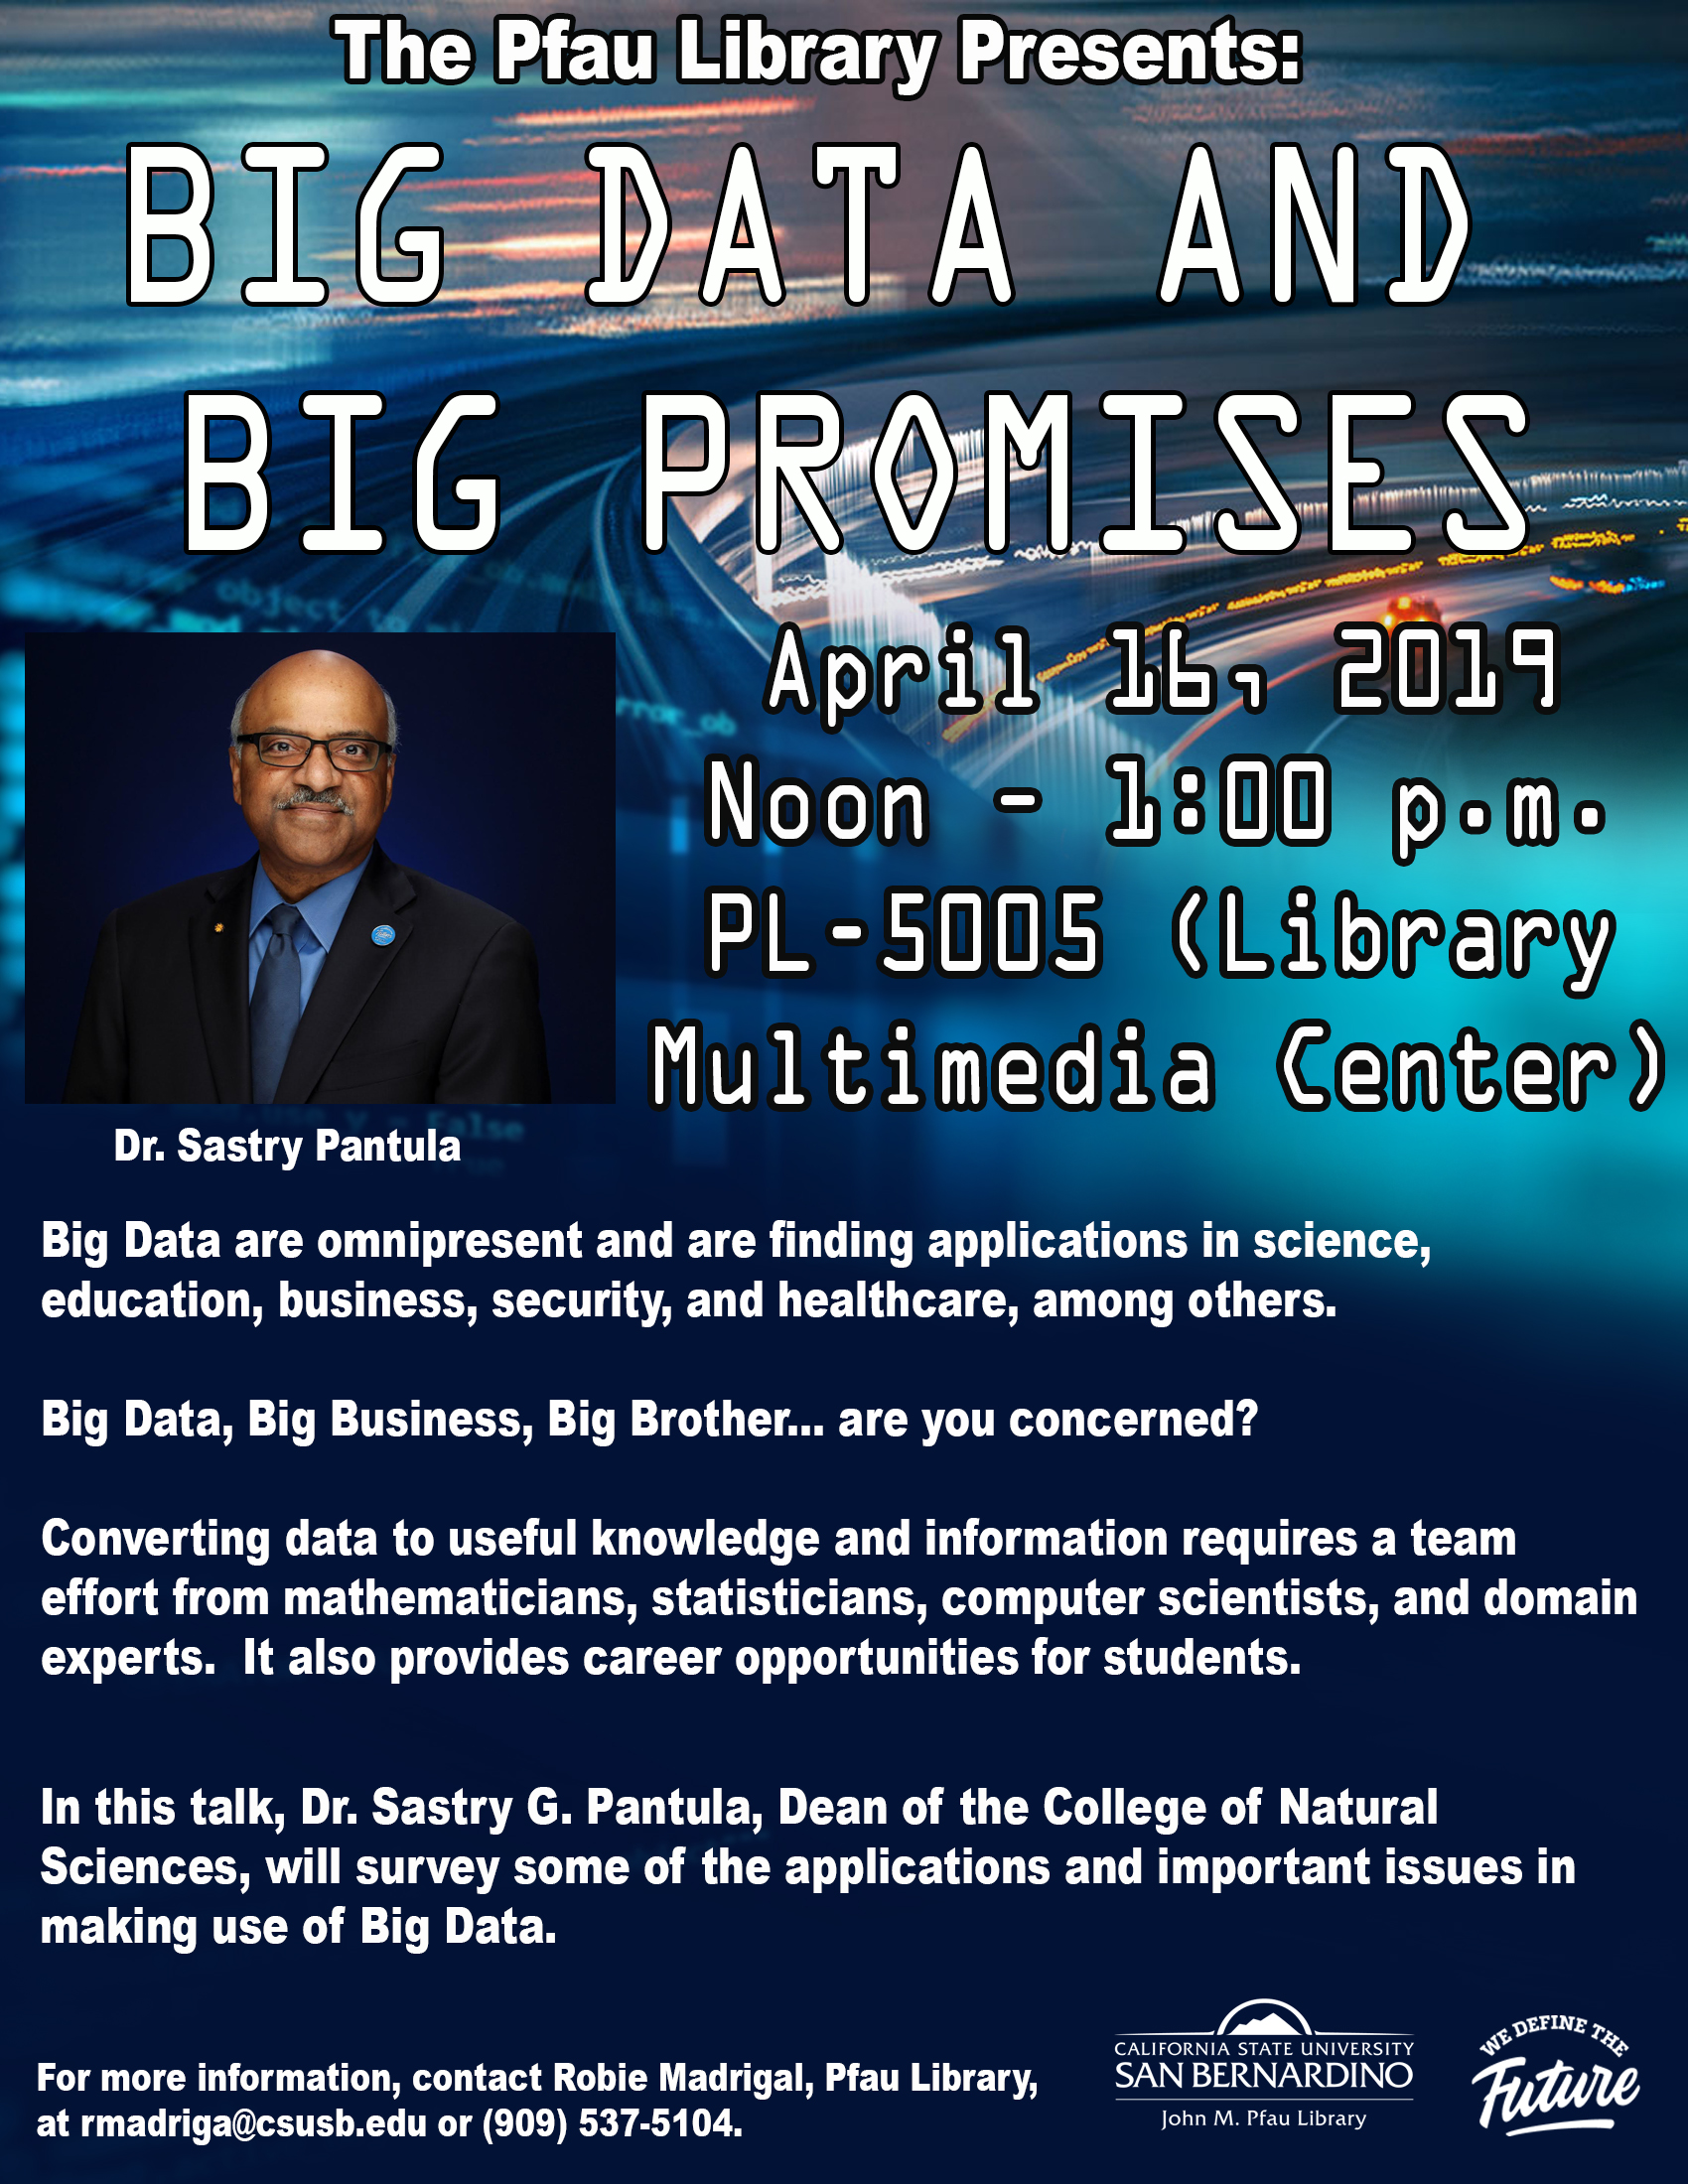 CSUSB dean holds talk at Pfau Library on April 16 on Big Data